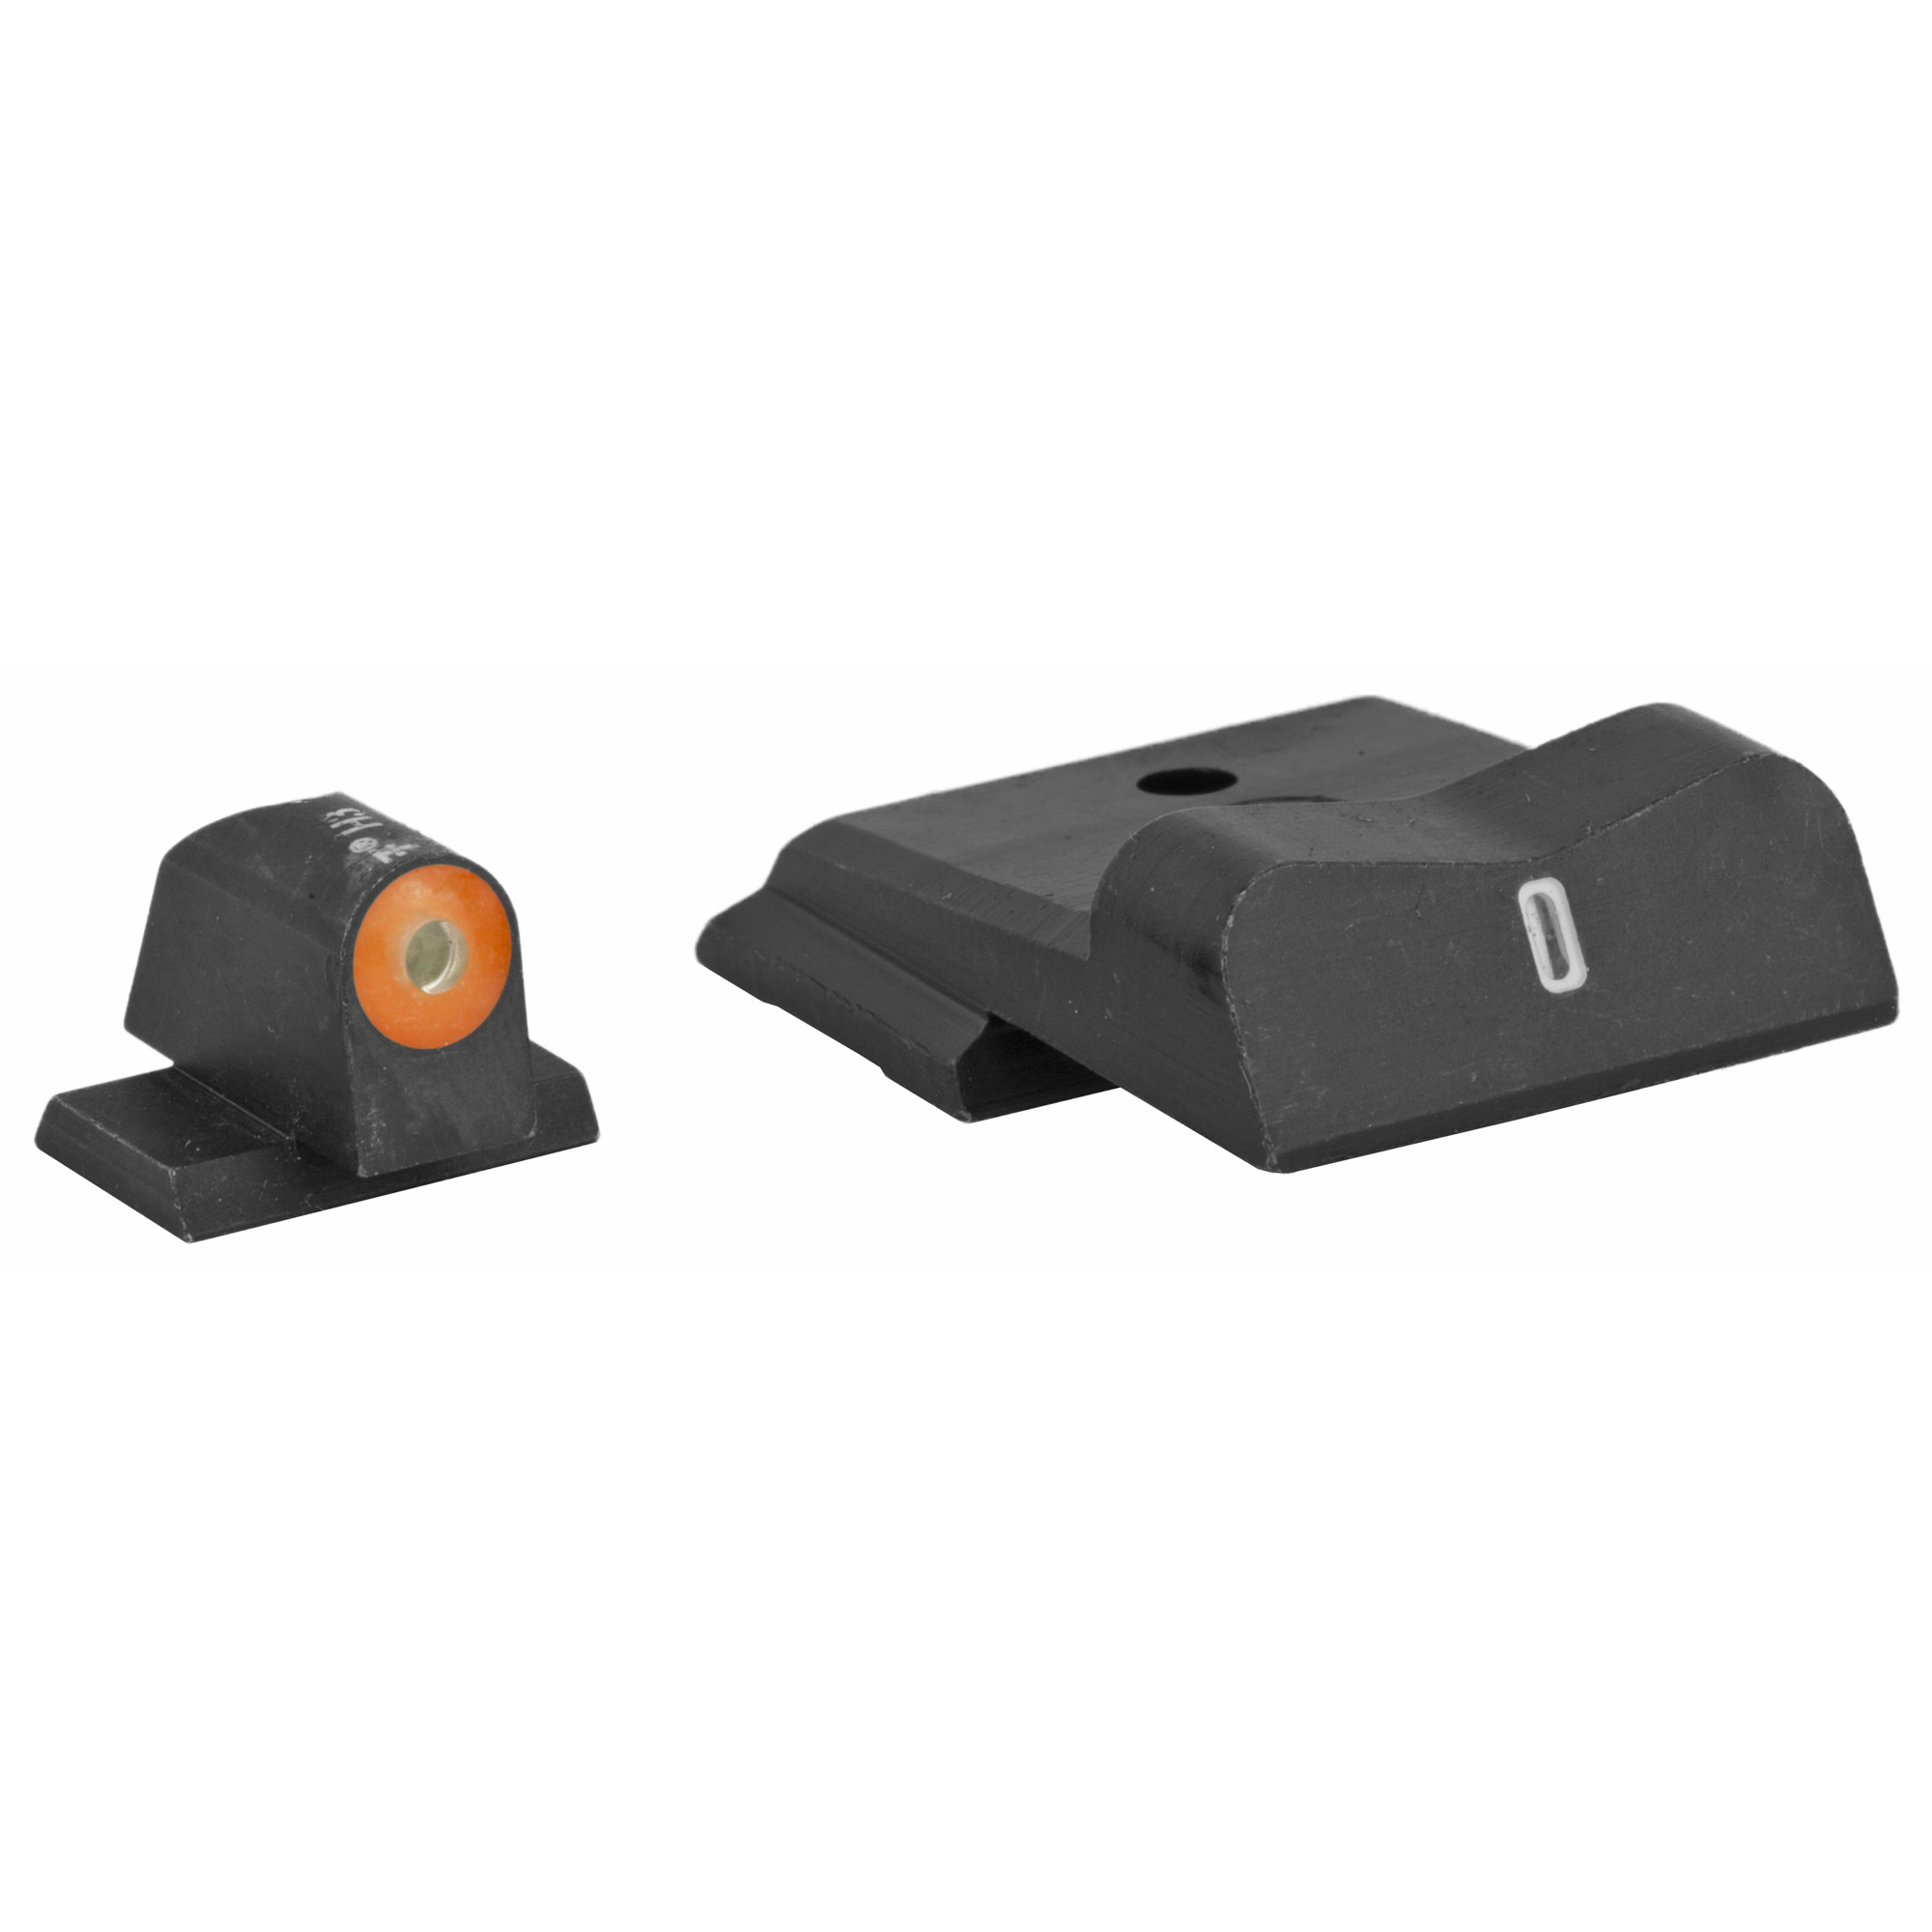 "XS DXT2 Big Dot Night Sights offer the best front sight visibility in all lighting conditions. DXT2 Big Dot sights drive focus to the front sight using a high-contrast front and a V-notch rear for an unobstructed view of the front sight. DXT2 Big Dot front sights use a patent pending glow dot that absorbs light and glows in low light levels before it is dark enough to see the tritium. Optic Orange is designed to offer a high-contrast sight picture when shooting in bright light conditions and maintain its visibility in decreasing light levels. To ensure visibility in low light when uncharged"" optic orange is primarily based on yellow with a hint of red. The increased surface area of the convex dot increases light absorption"" intensifying the charge of the glow properties of the dot. The dot-the ""i"" sight picture"" with a tritium dot in the front sight and a tritium bar in the rear"" prevents confusing the front and rear sight in high-stress situations. The wide field of view increases visibility of the front sight and of the threat downrange."